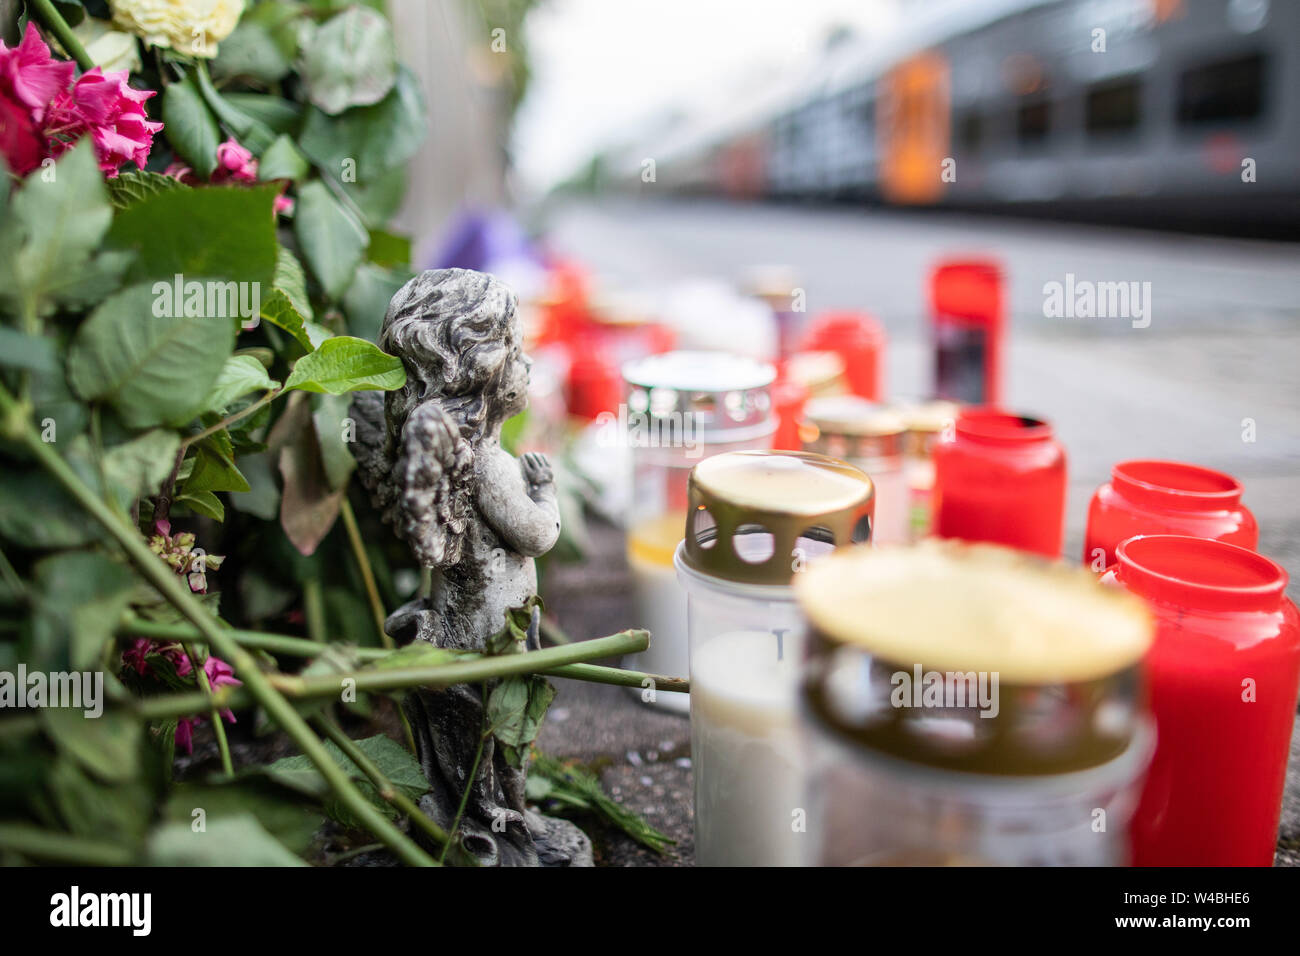 Voerde, Germany  22nd July, 2019  Flowers, candles and a